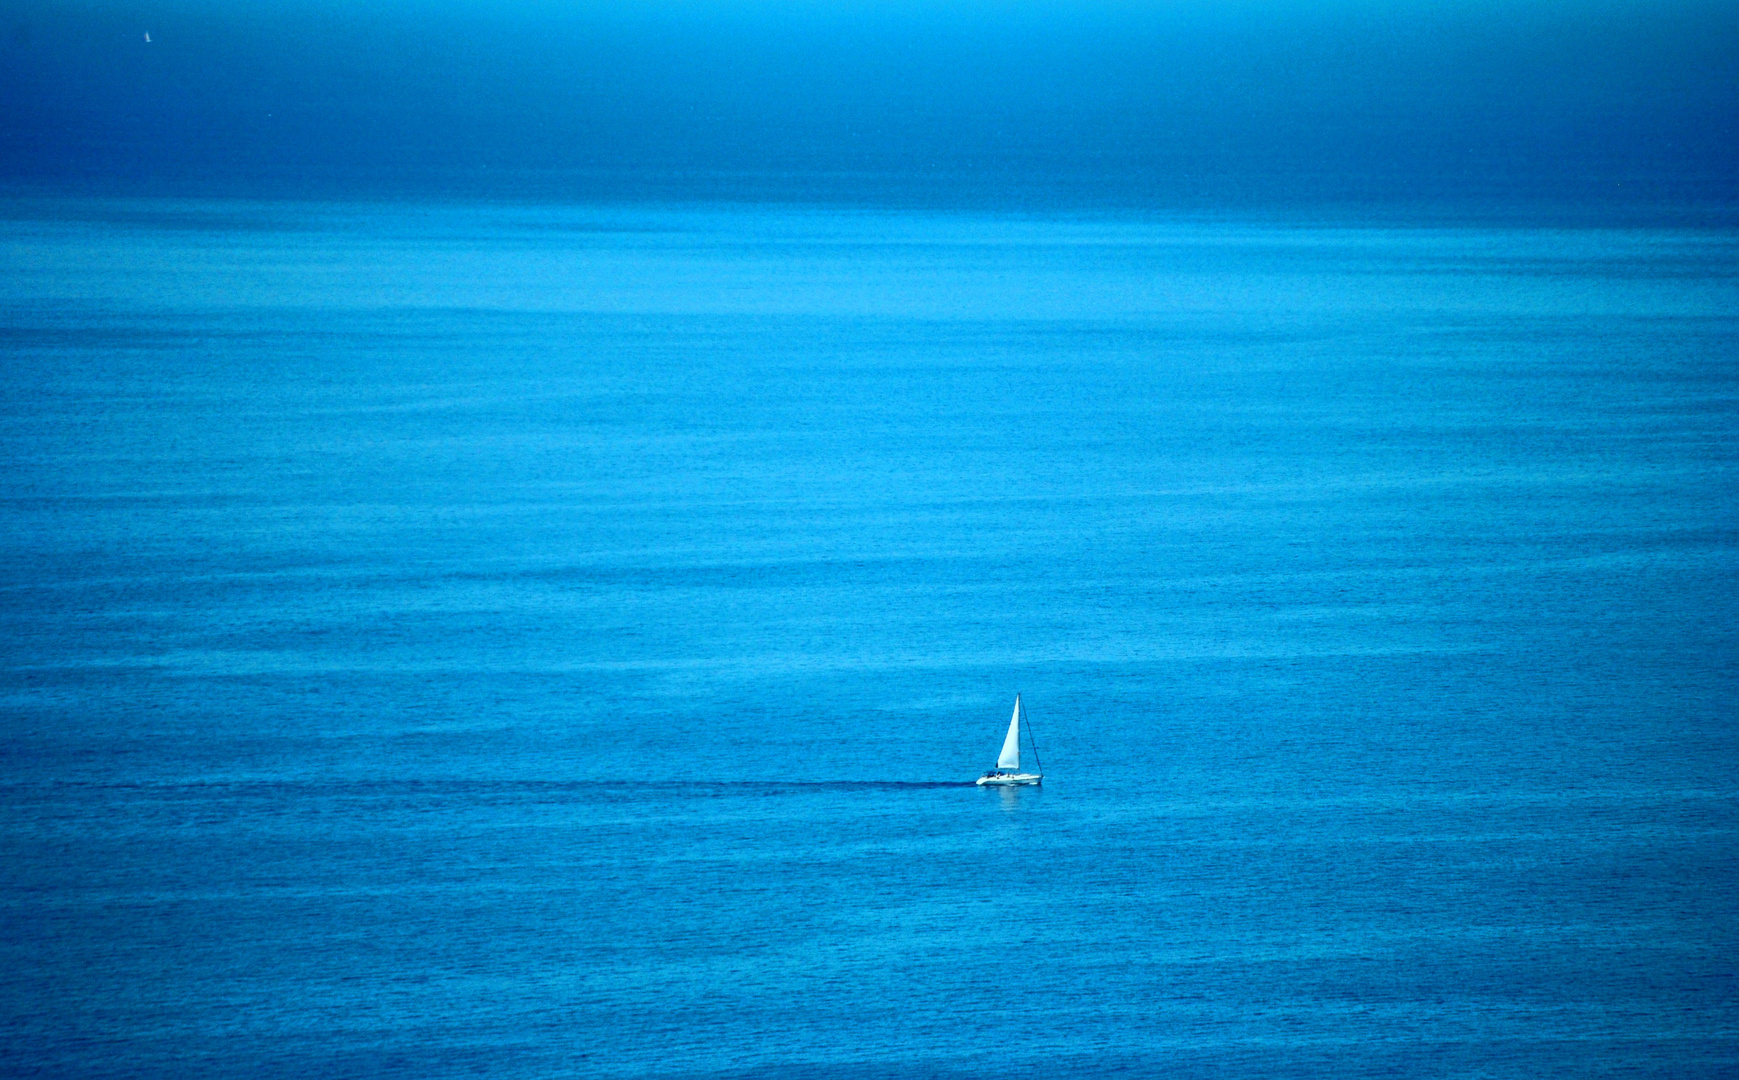 Alone in the Blue